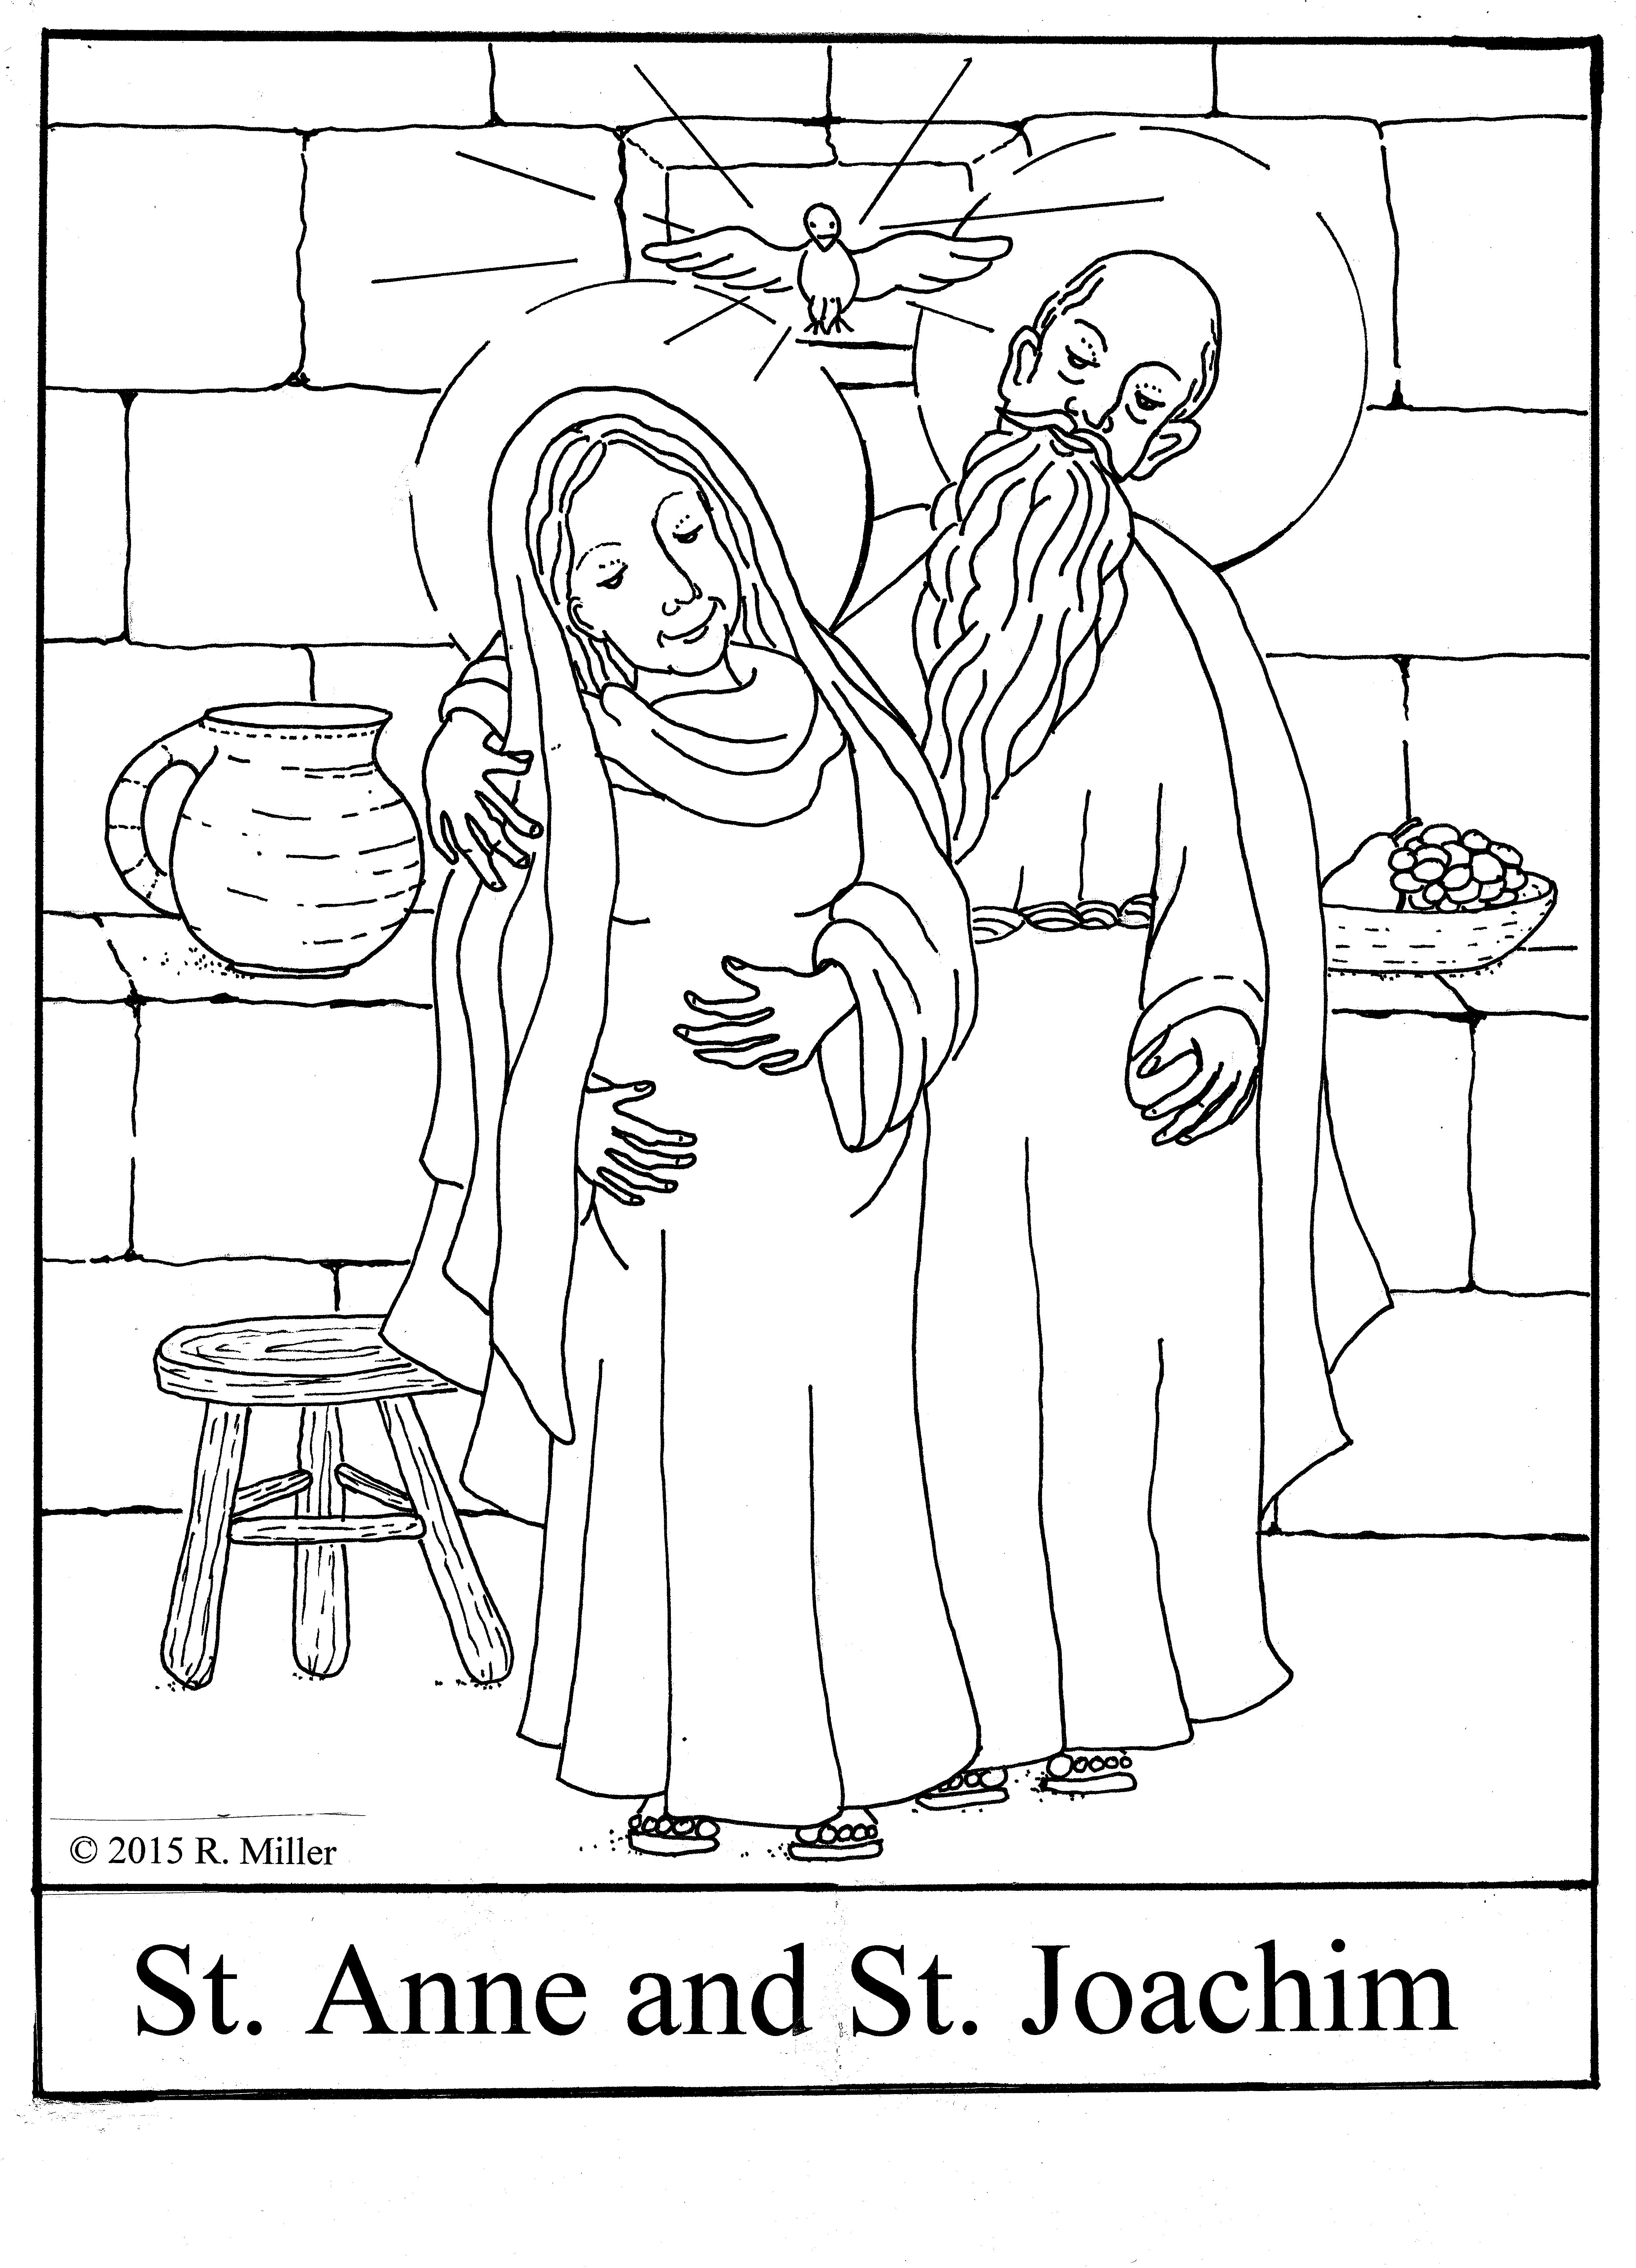 Saint Anne And Joachim C 2015 R Miller Coloring Page